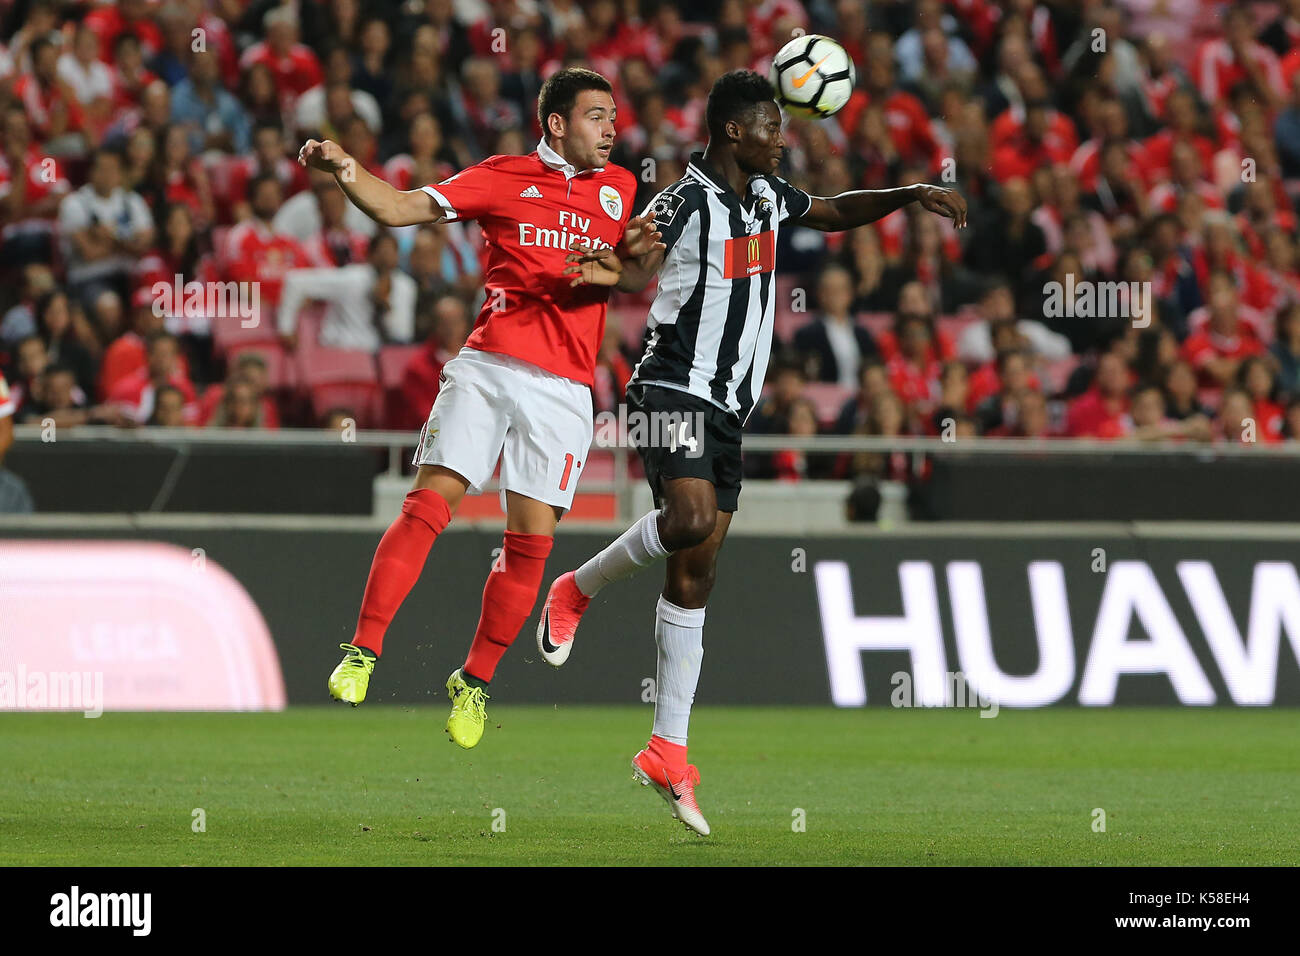 Benfica«s forward Andrija Zivkovic from Serbia (L) and Portimonense«s defender Emma Hackman from Ghana  (R) during the Premier League 2017/18 match between SL Benfica v Portimonense SC, at Luz Stadium in Lisbon on September 8, 2017. (Photo by Bruno Barros / DPI) - Stock Image